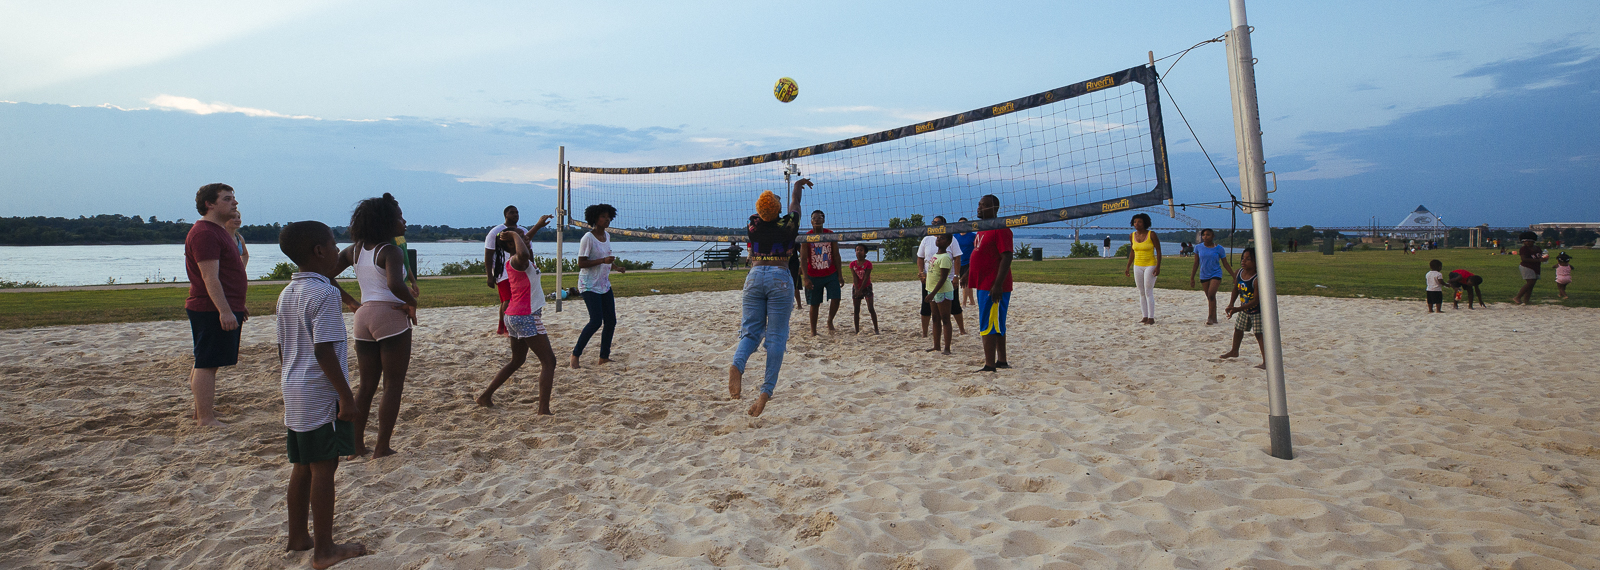 Memphians play a game of sand volleyball around sunset at Tom Lee Park. <span class='image-credits'>Ziggy Mack</span>